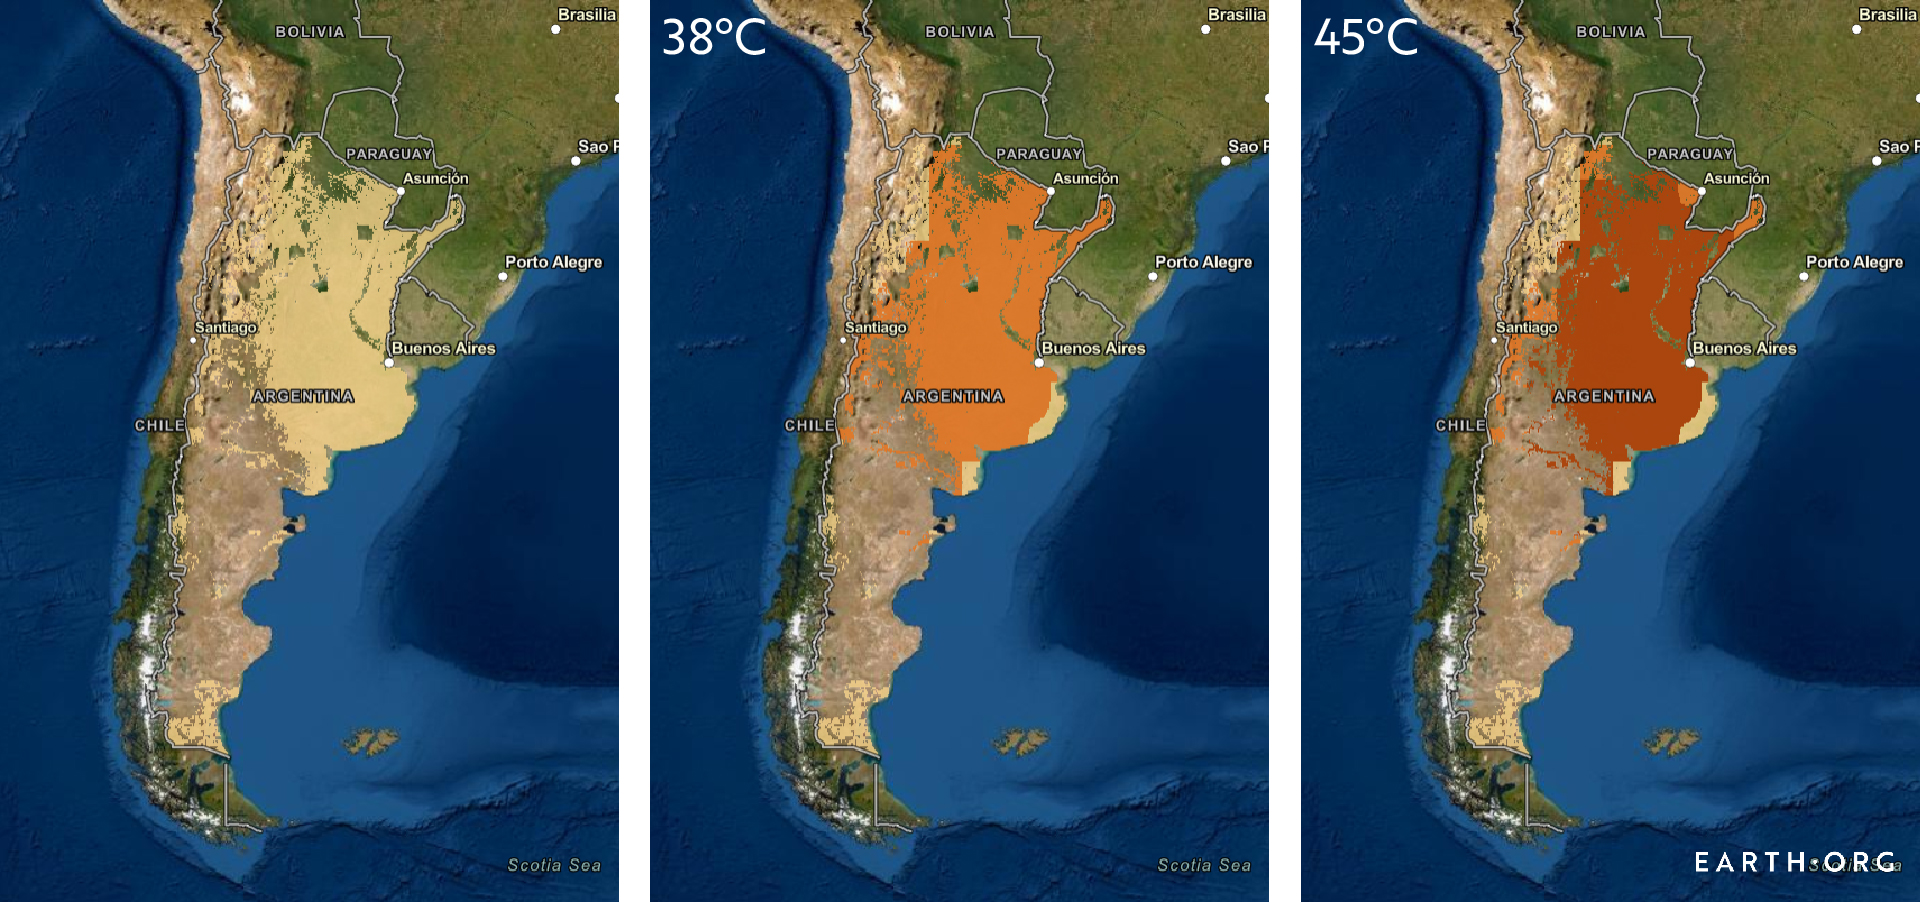 Argentina global warming agriculture food security